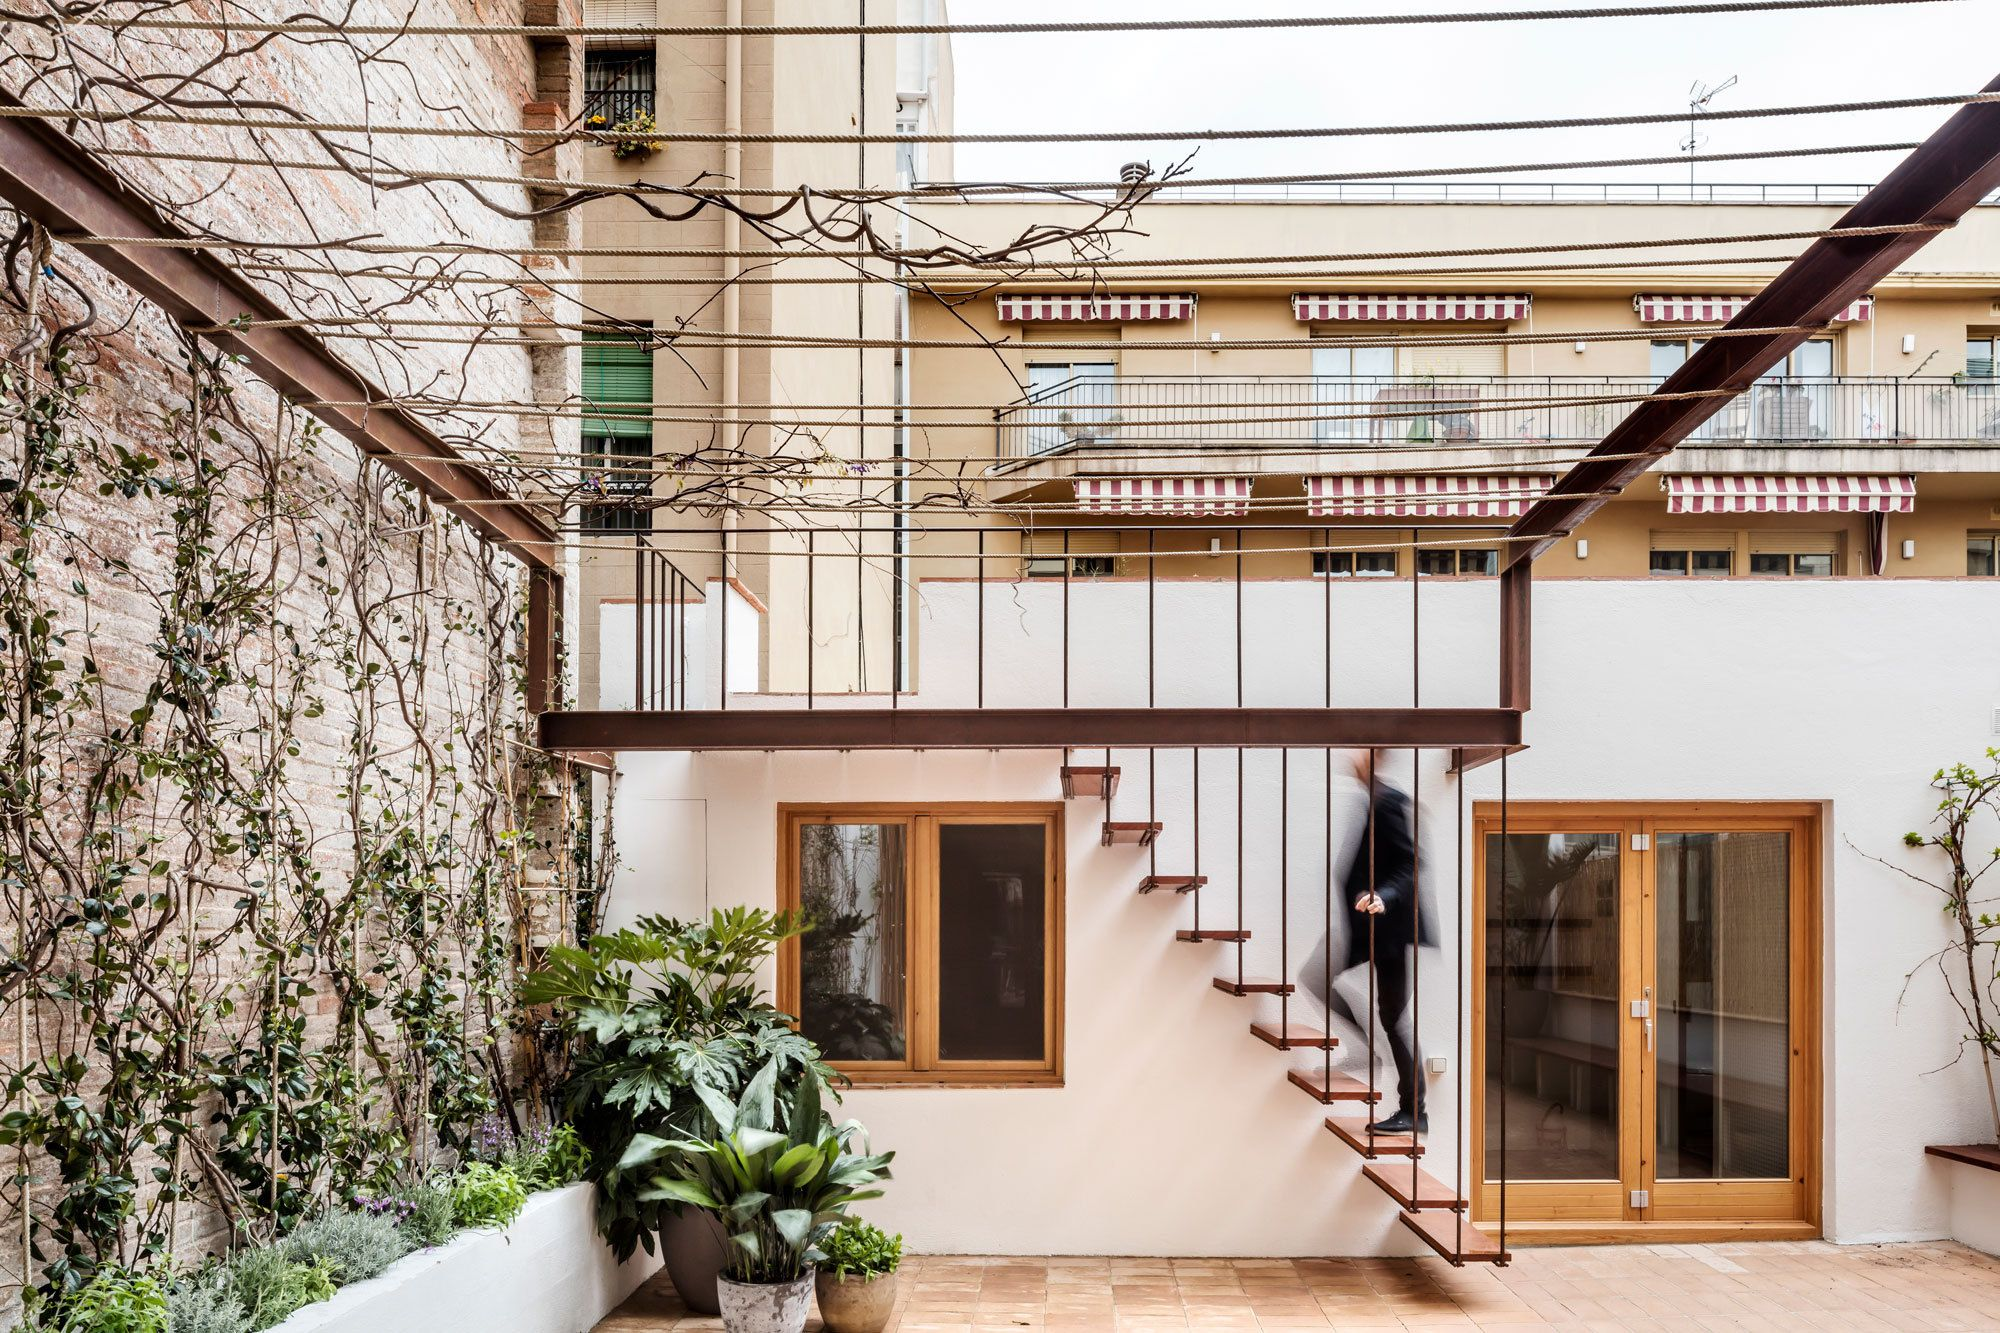 gallery-house / carles enrich | the o'jays, (2017) and 39;s